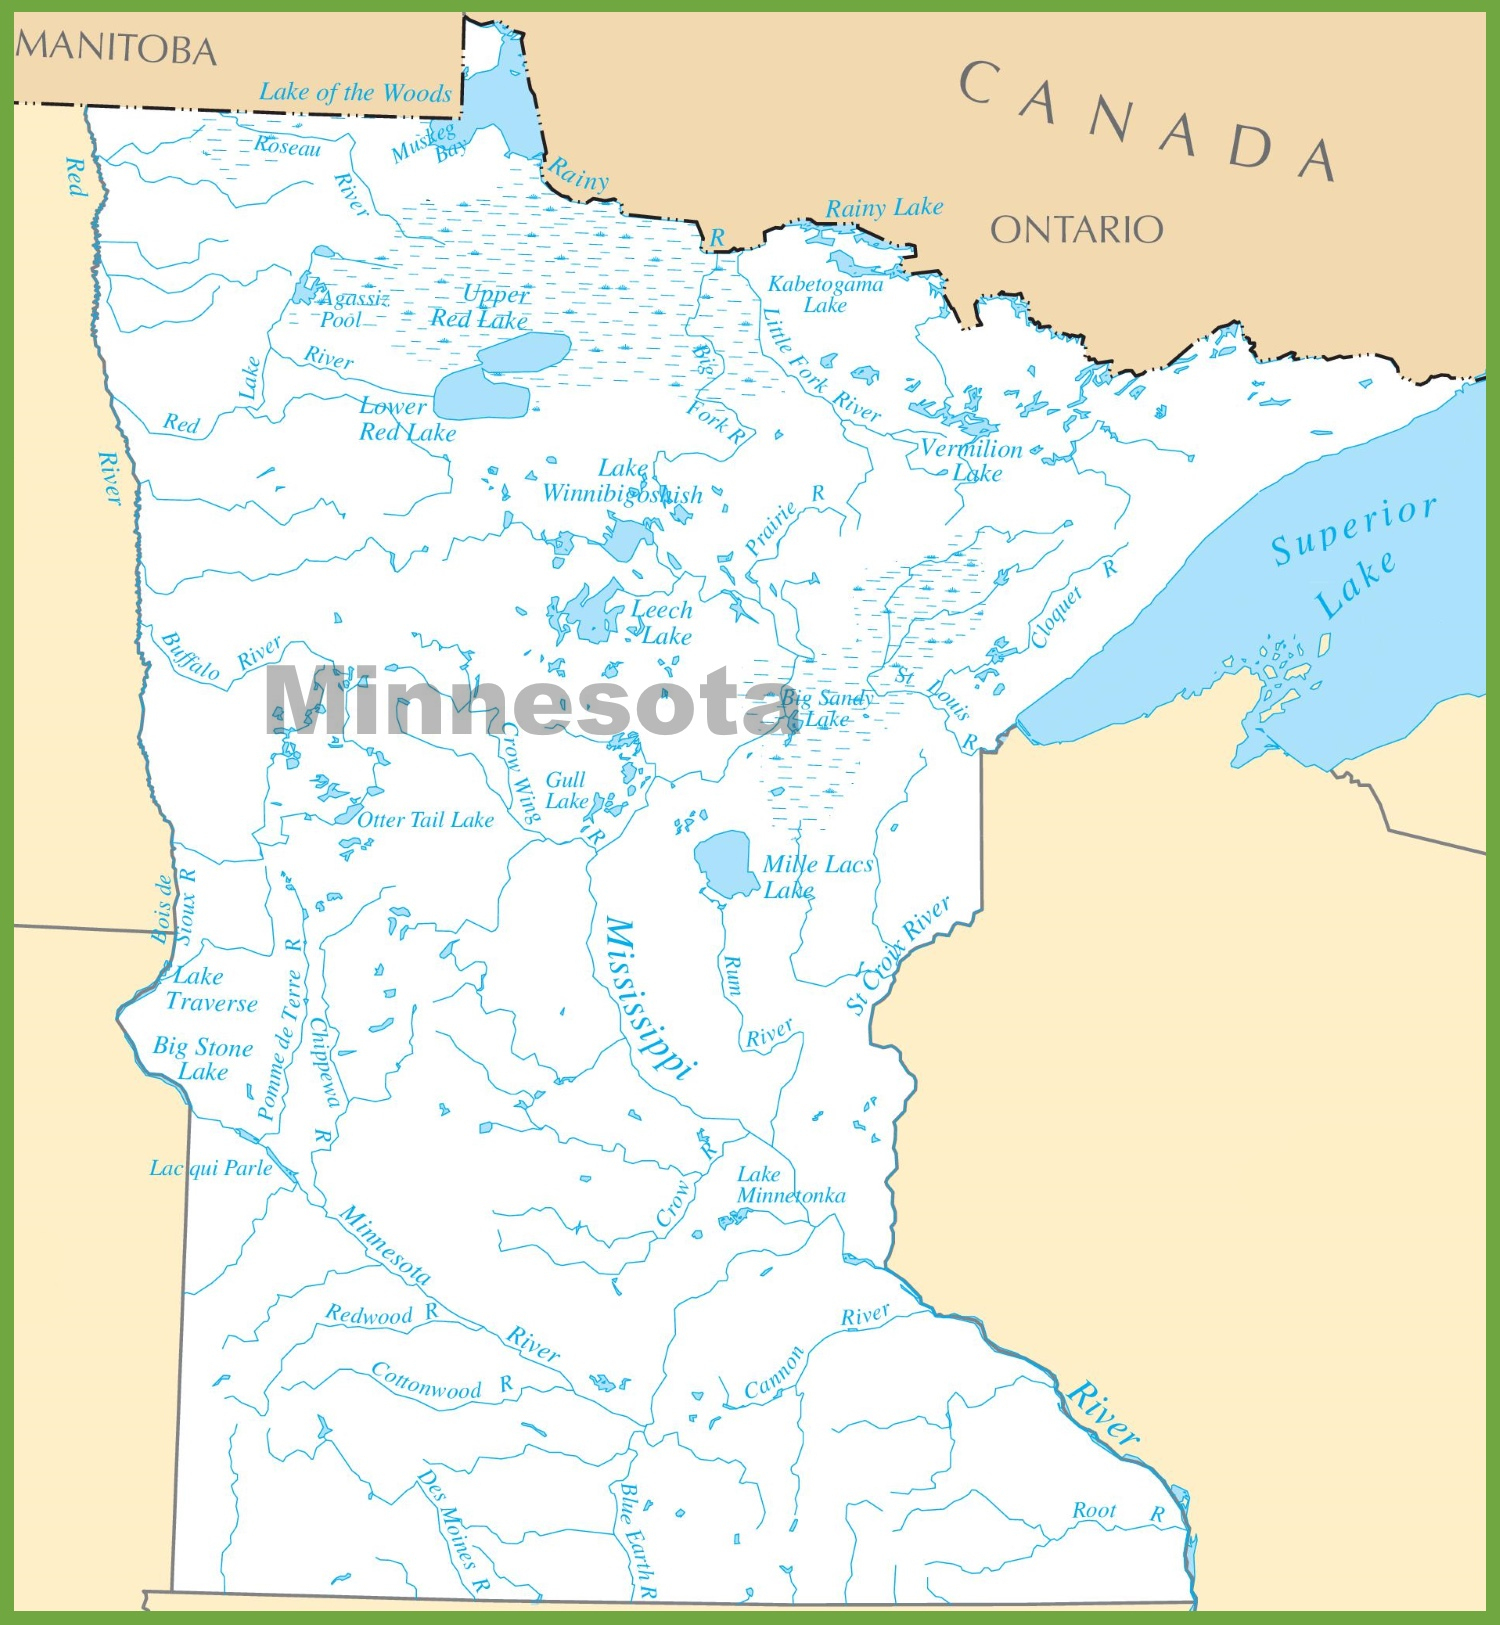 Minnesota State Maps | Usa | Maps Of Minnesota (Mn) - Printable Lake Minnetonka Map